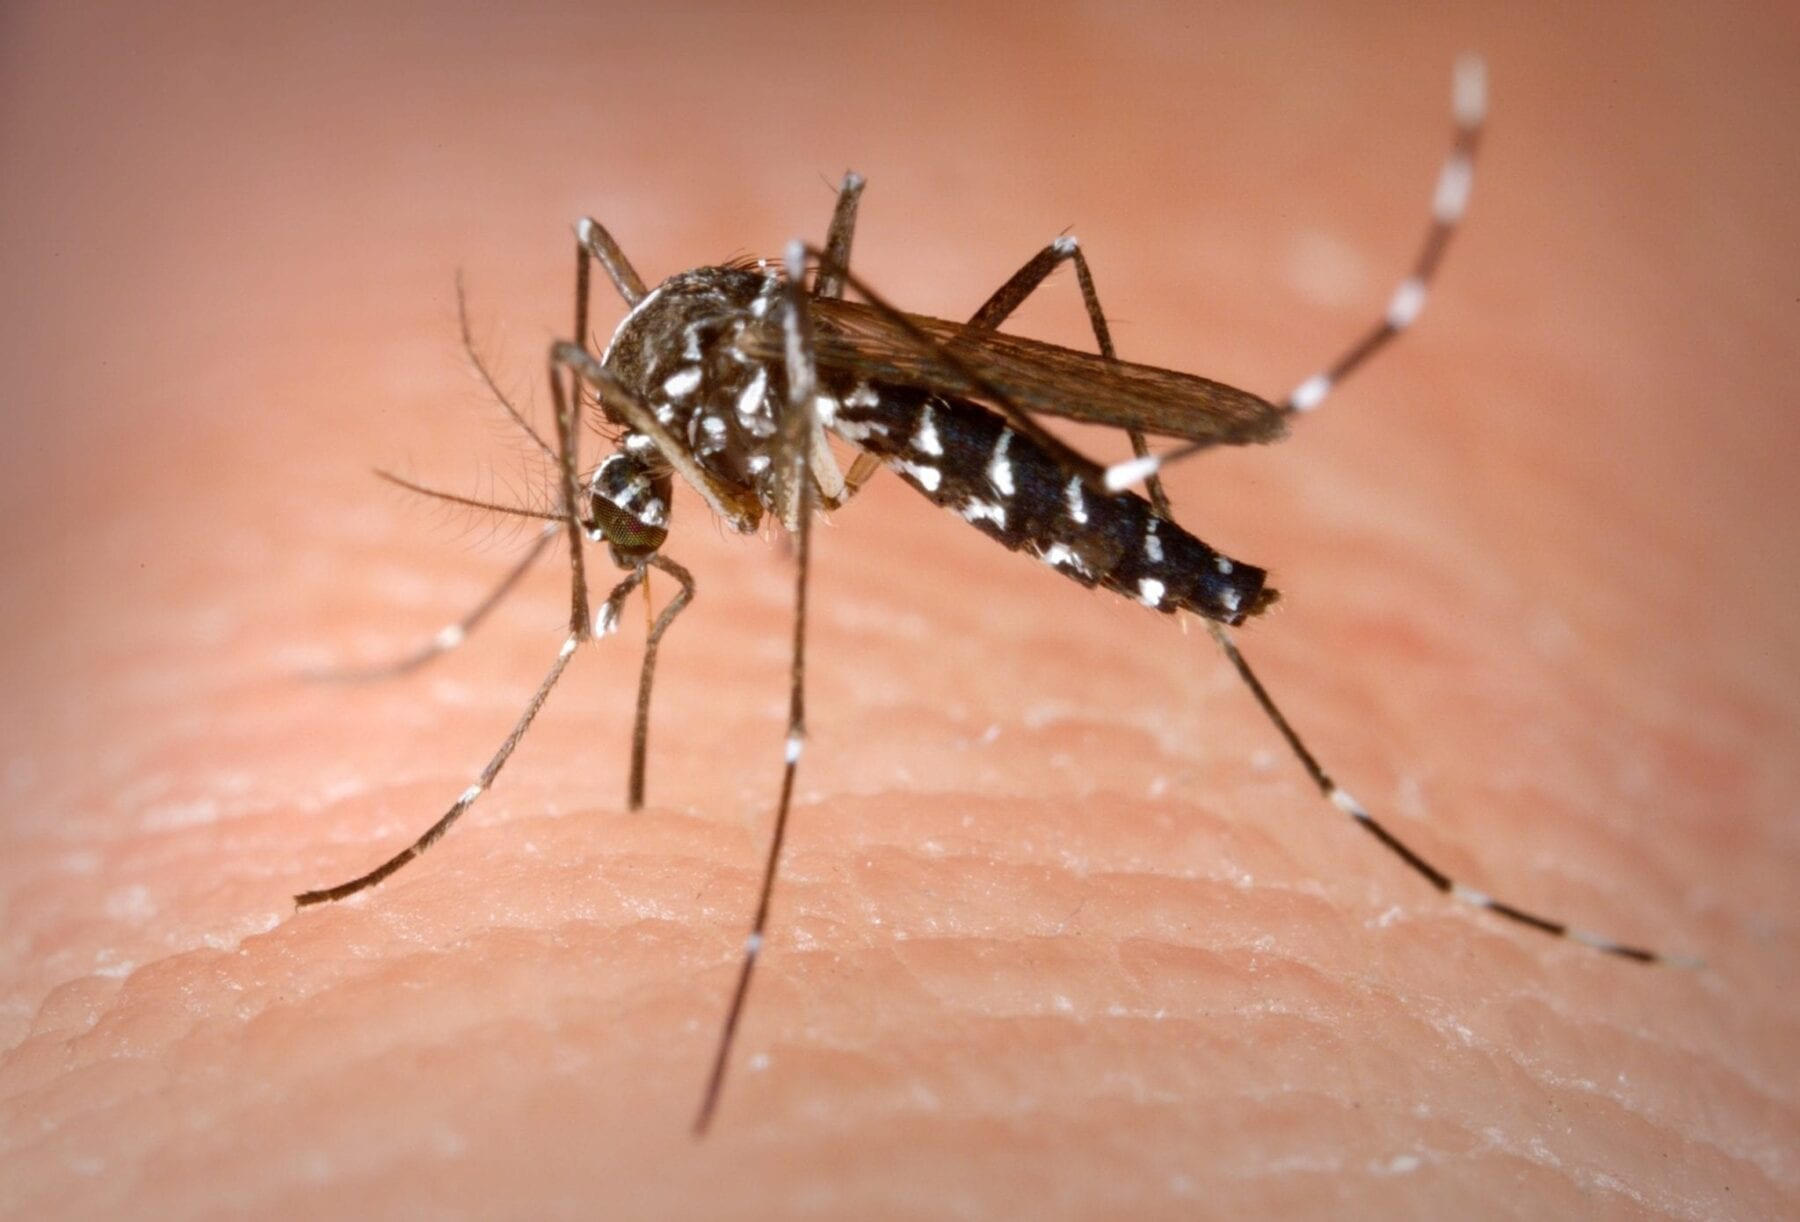 Zika traces found in Asian tiger mosquito in Brasil raises concerns around virus transmission